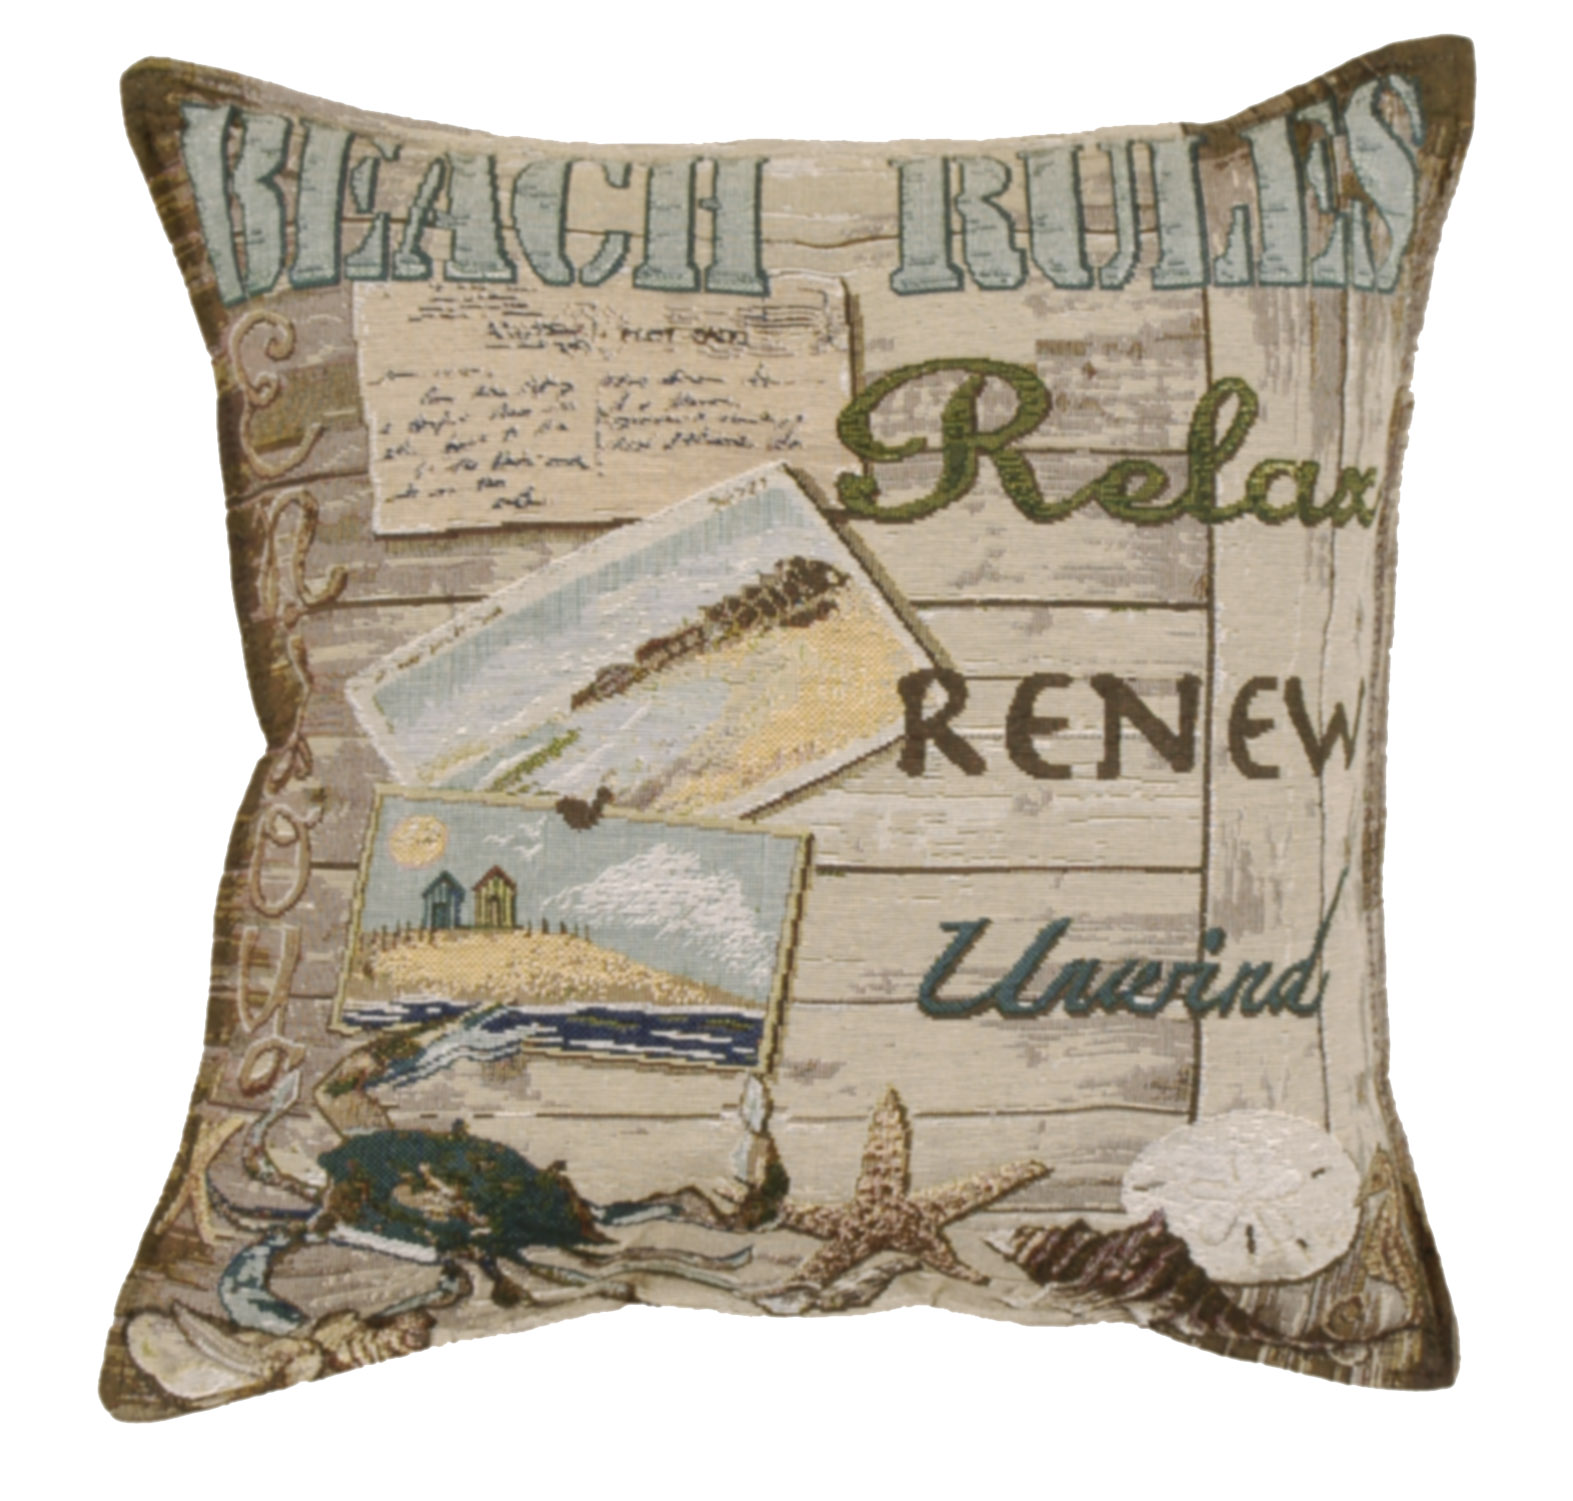 Set of 2 Cape Cod Beach Rules Square Decorative Tapestry Throw Pillows 17""